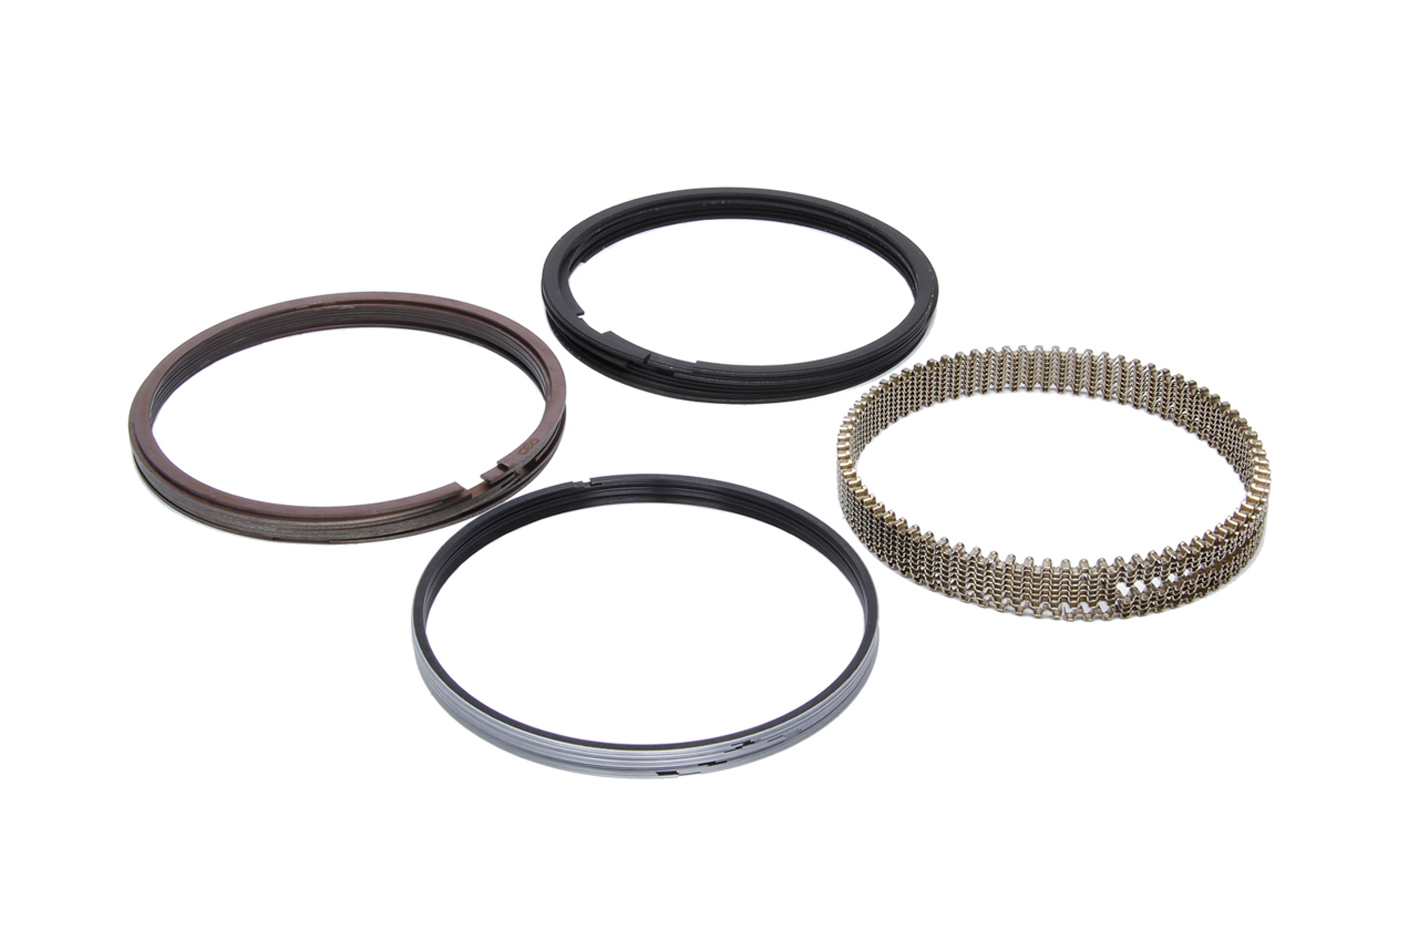 JE Pistons J71408-4130-5 Piston Rings, File Fit, 4.130 in Bore, 0.043 in x 0.043 in x 3 mm Thick, Low Tension, Iron, 8 Cylinder, Kit